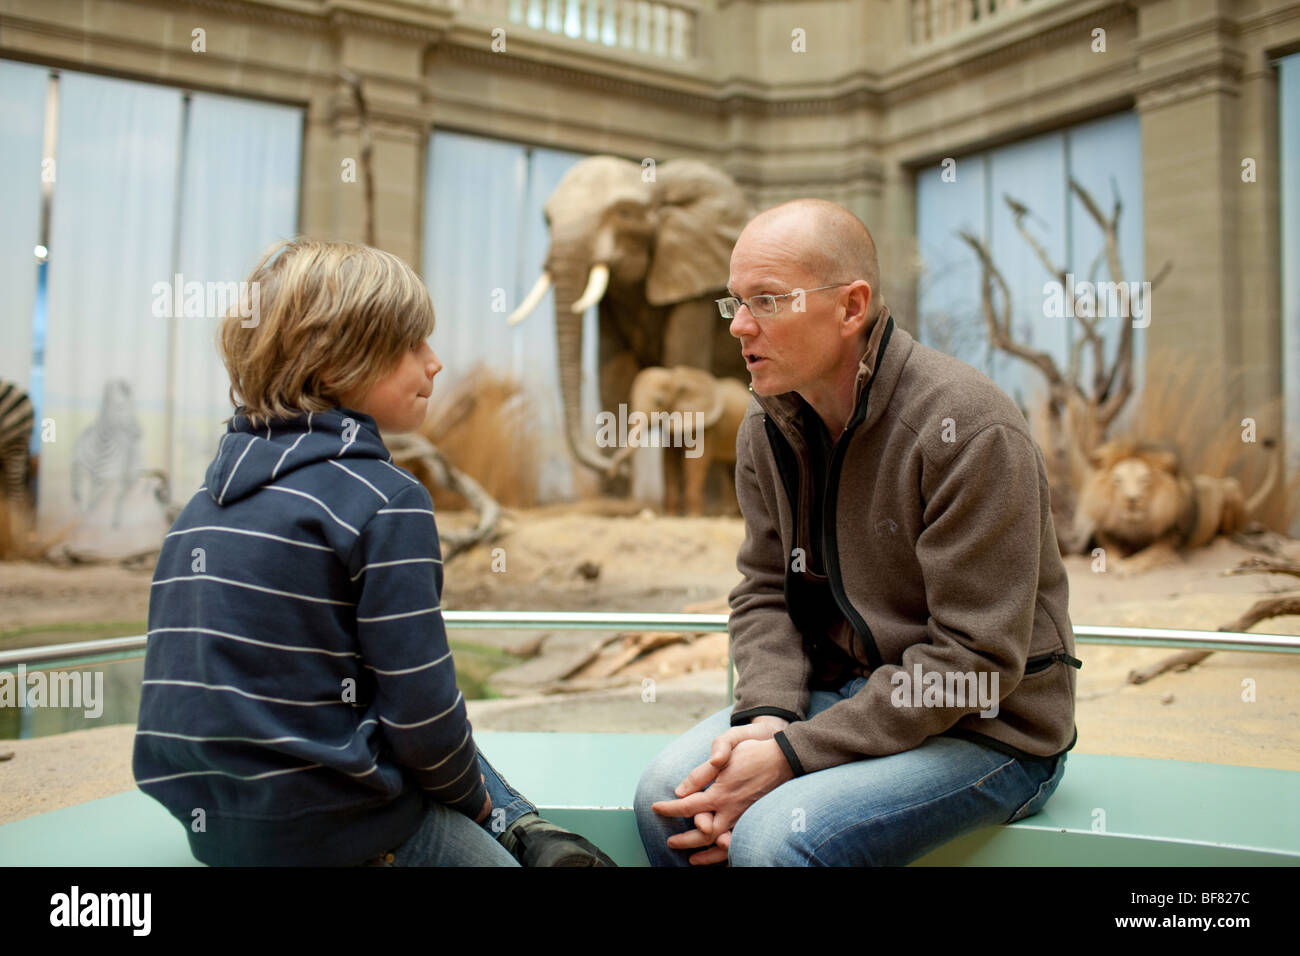 Father and Son at the museum - Stock Image